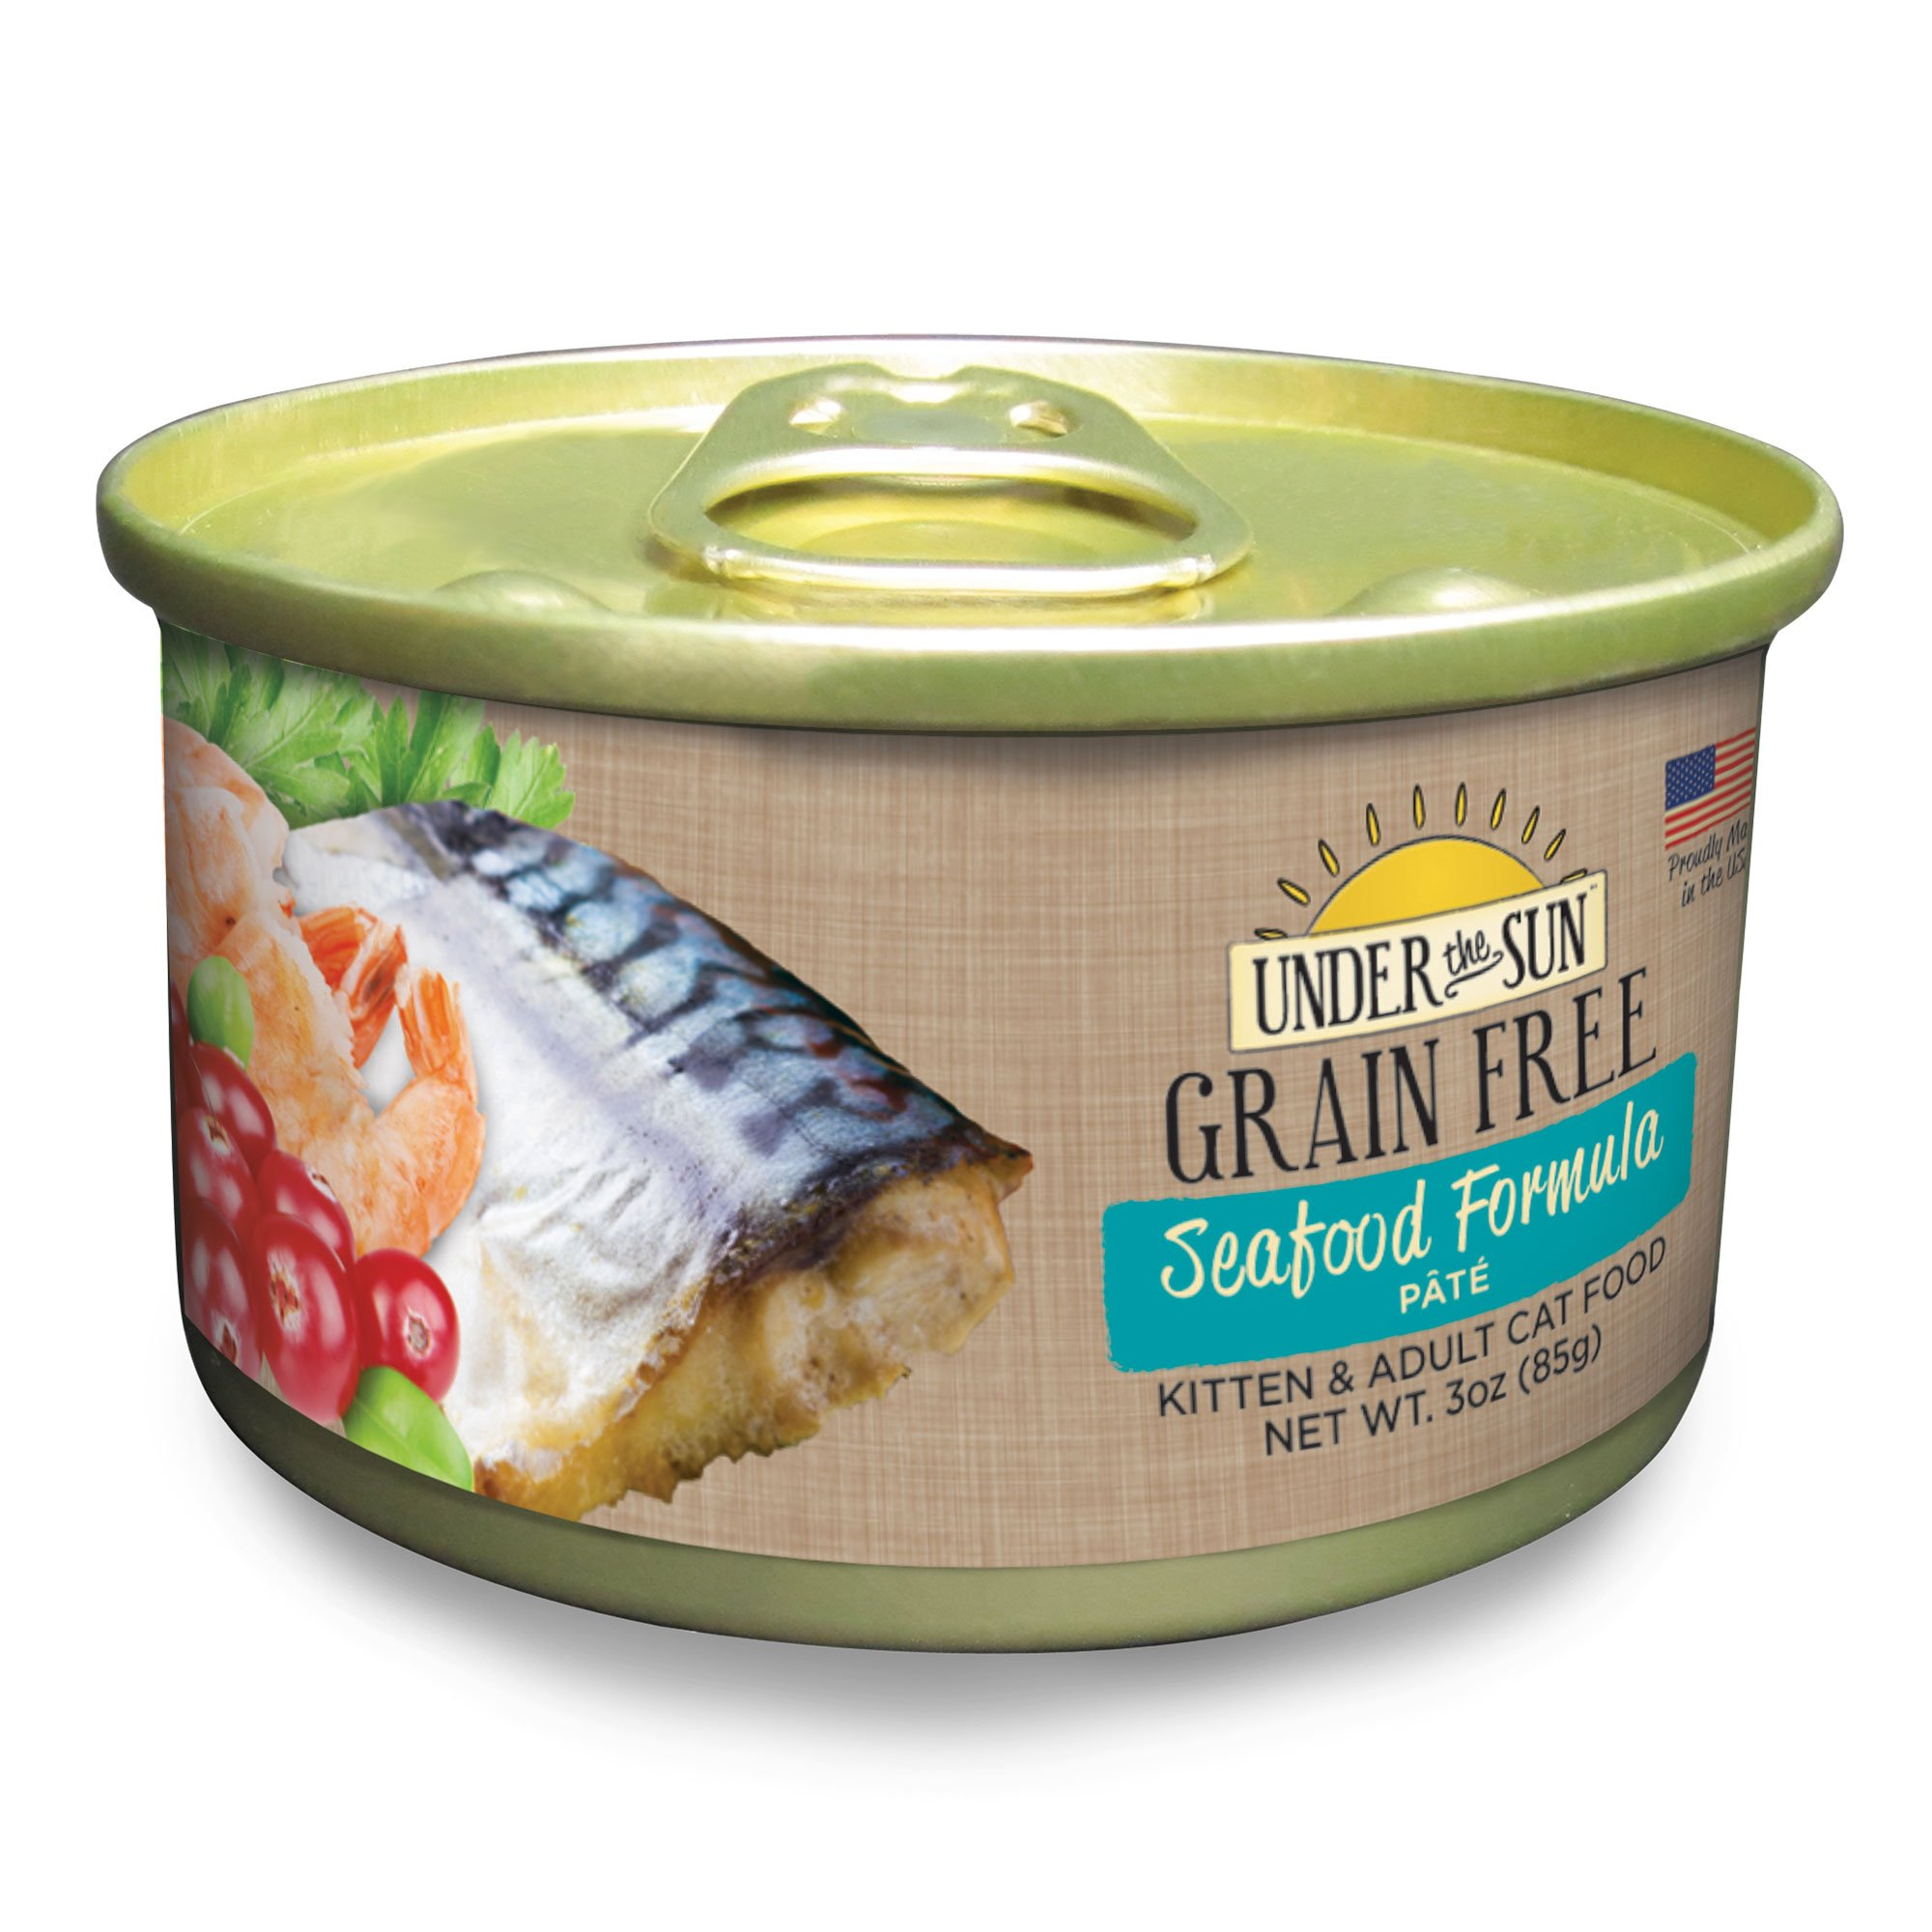 Under The Sun Grain Free Seafood Kitten & Adult Canned Cat Food